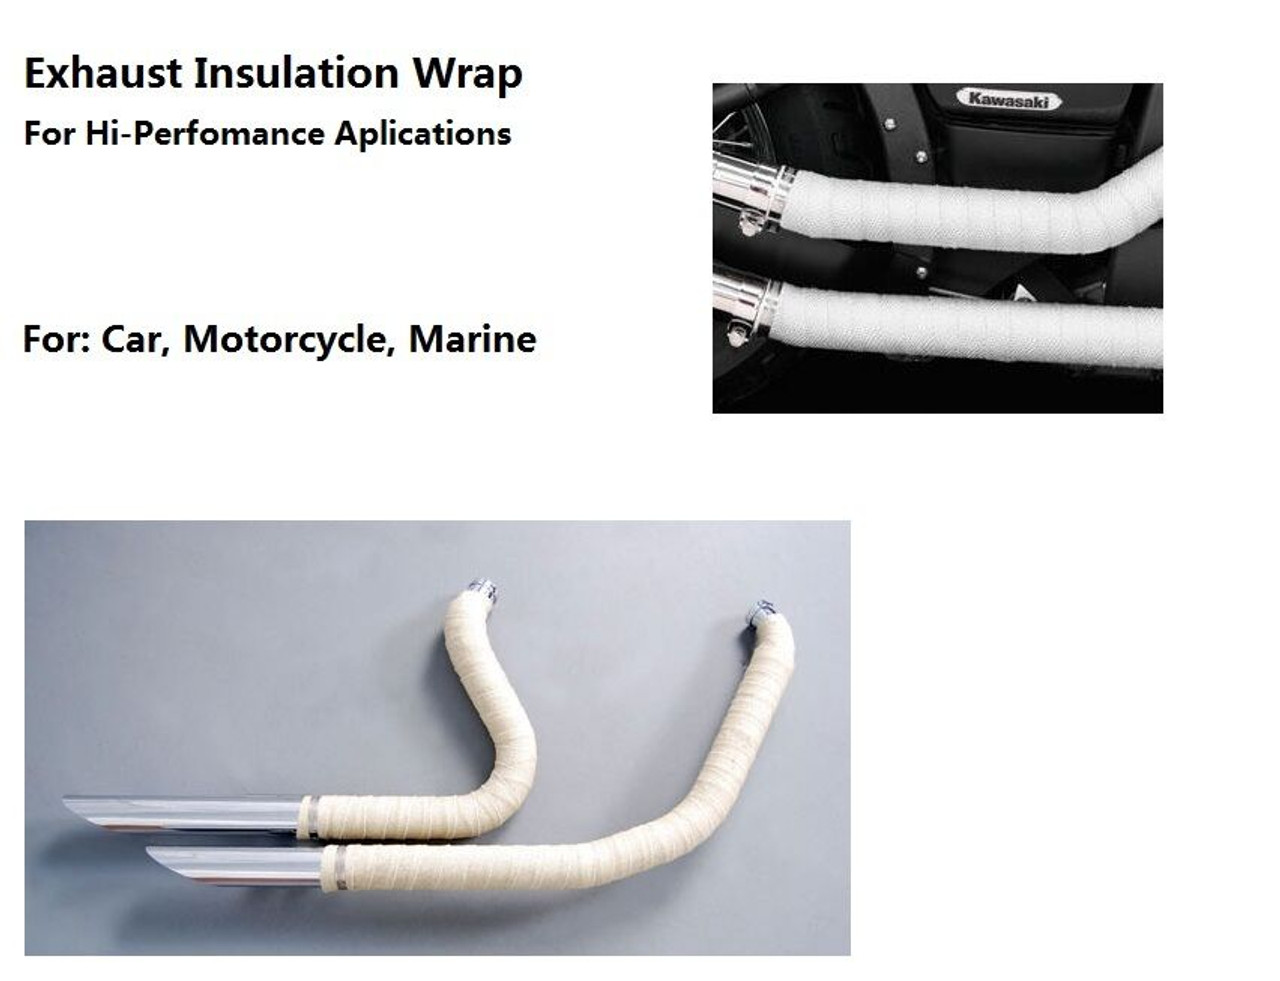 Exhaust Insulation Wrap 10m x 50mm + 10 S/S Fasteners -White